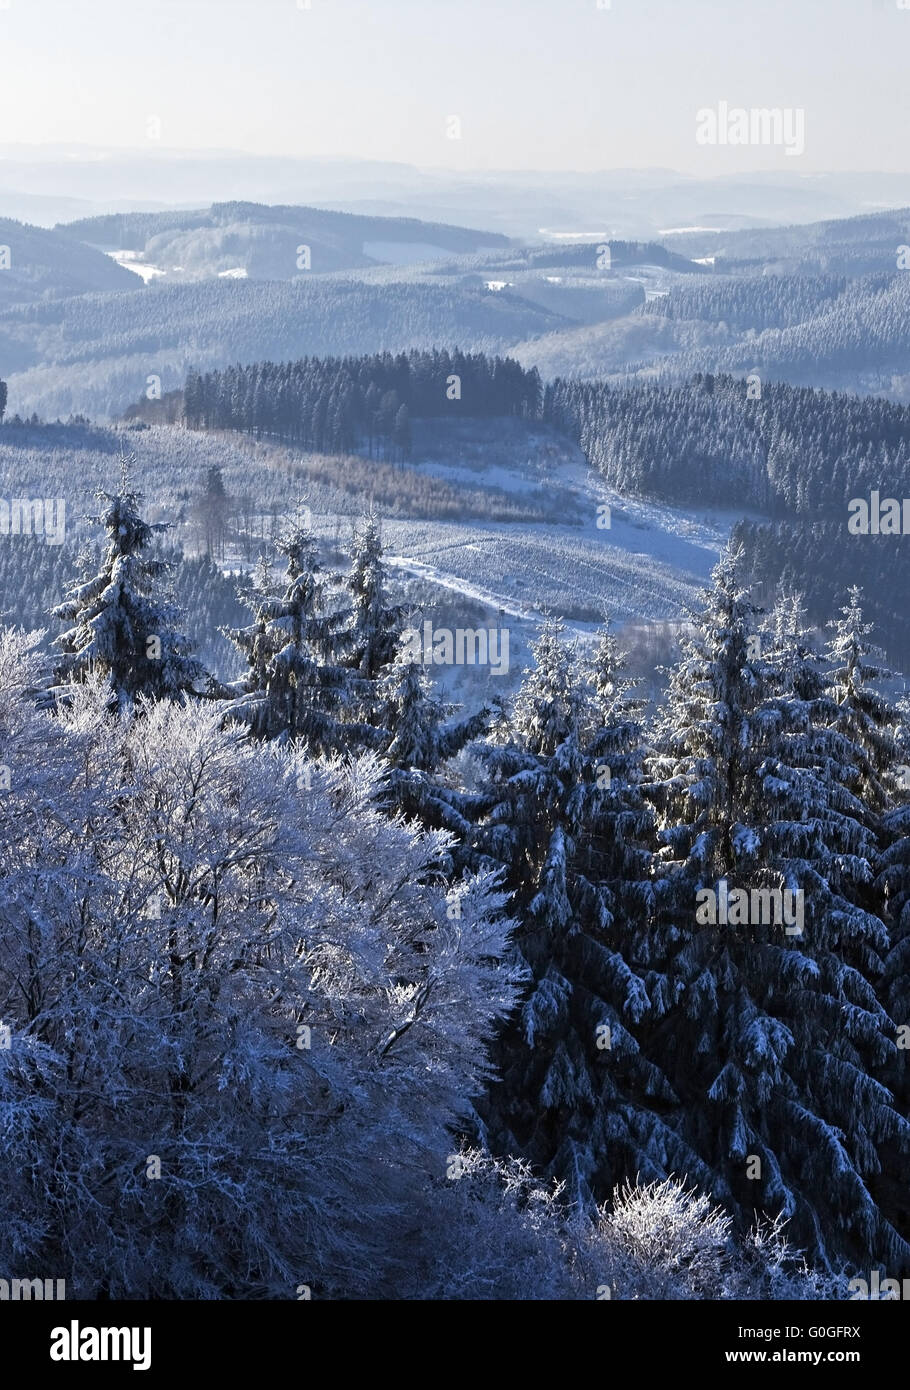 view to low mountain range near Wildewiese in winter, Germany, North Rhine-Westphalia, Sauerland - Stock Image